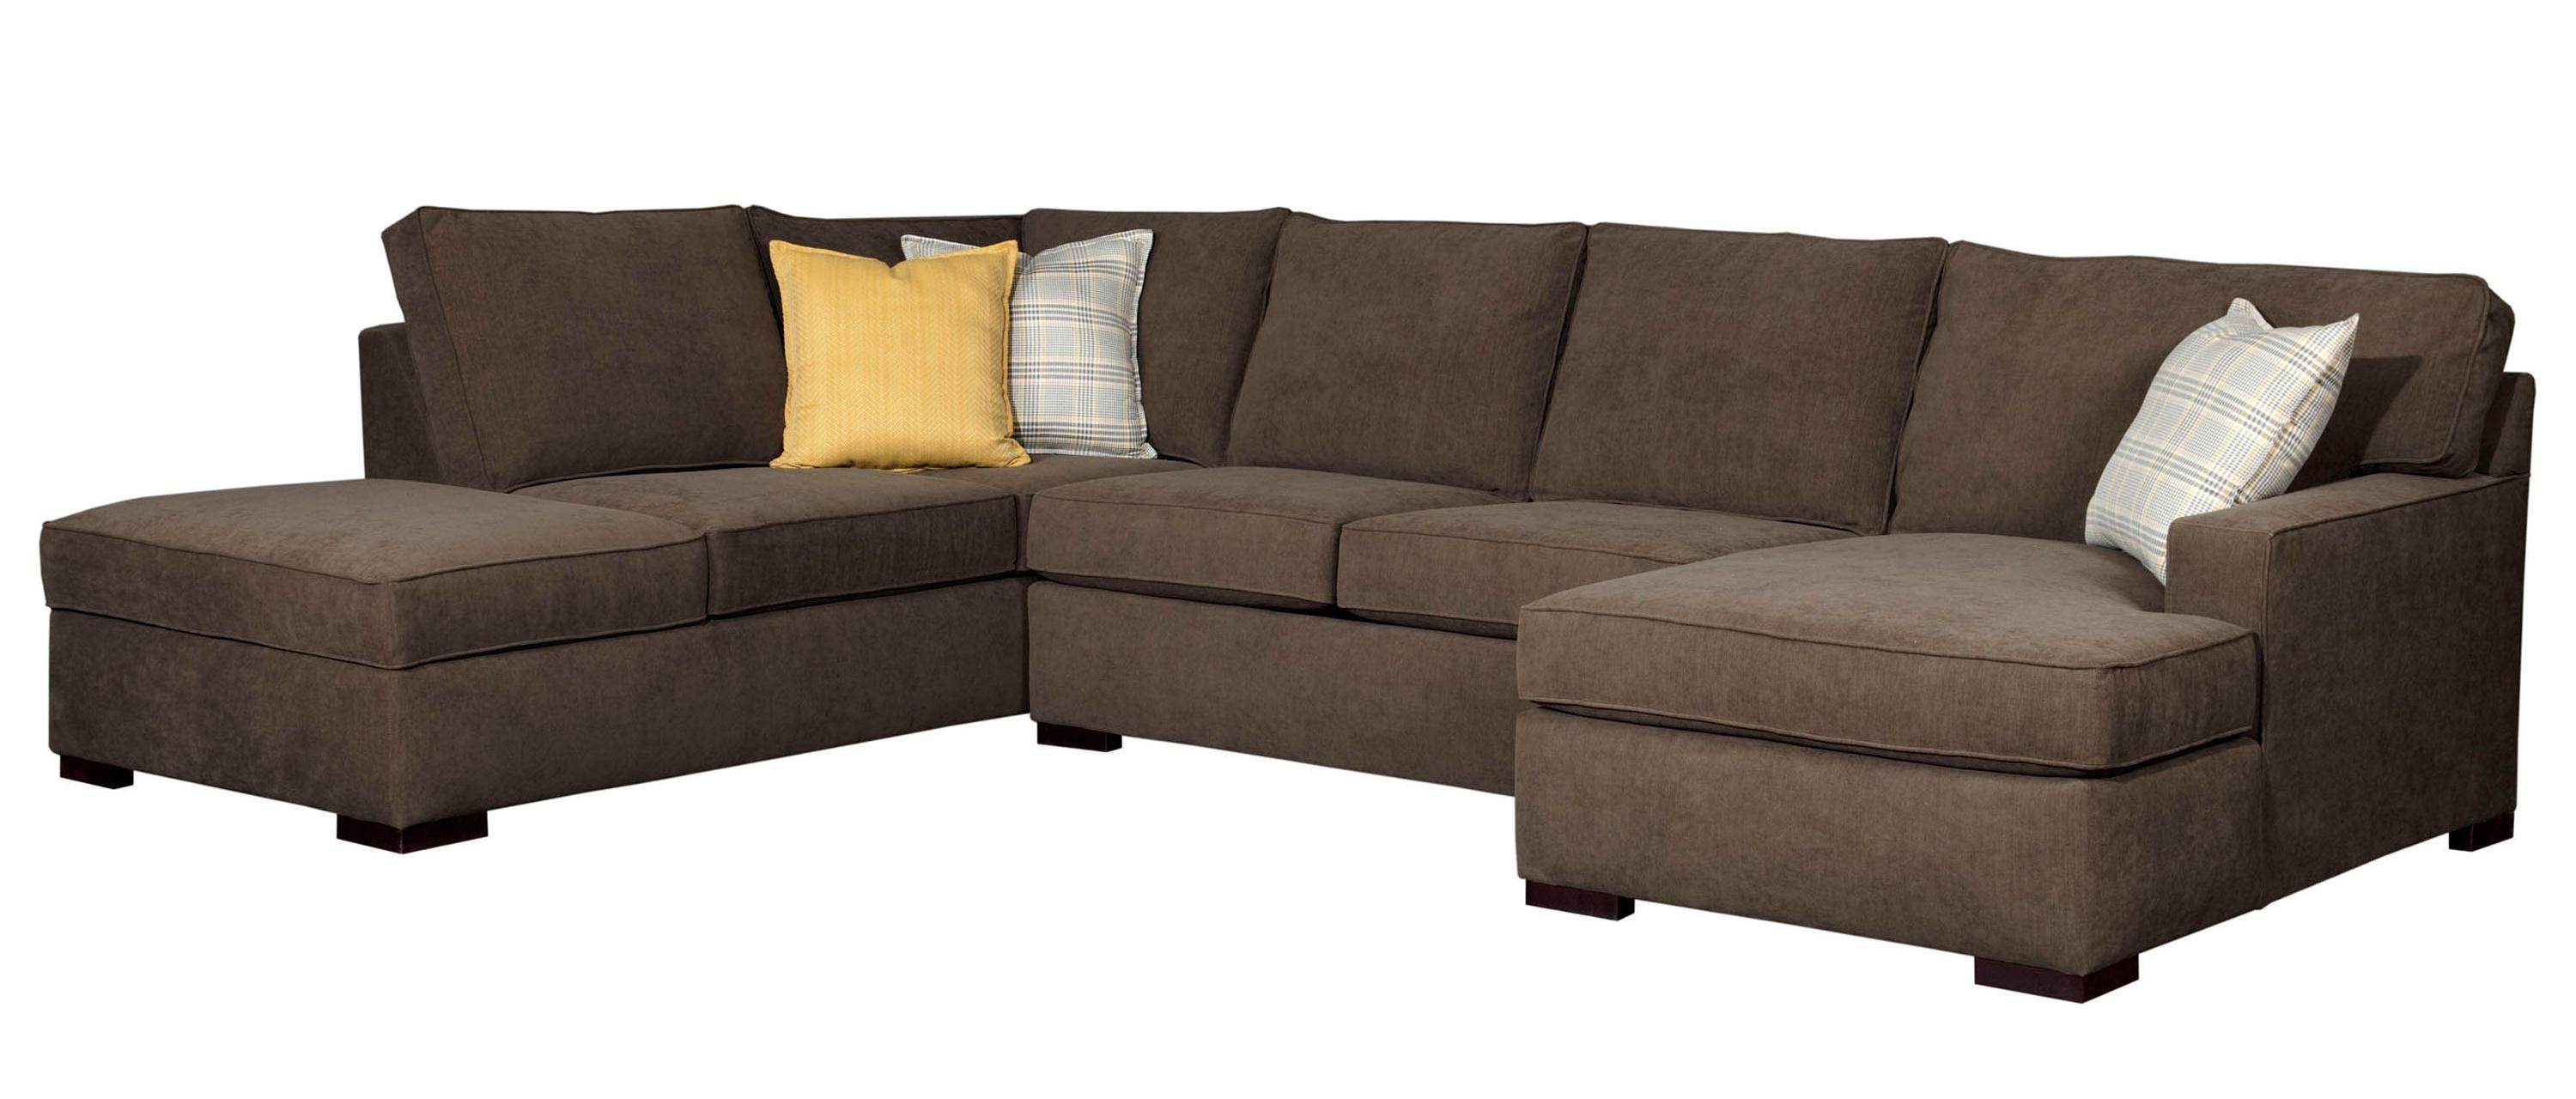 Raphael Contemporary Sectional Sofa With Raf Corner Storage Chaise Intended For Broyhill Sectional Sofas (#10 of 12)